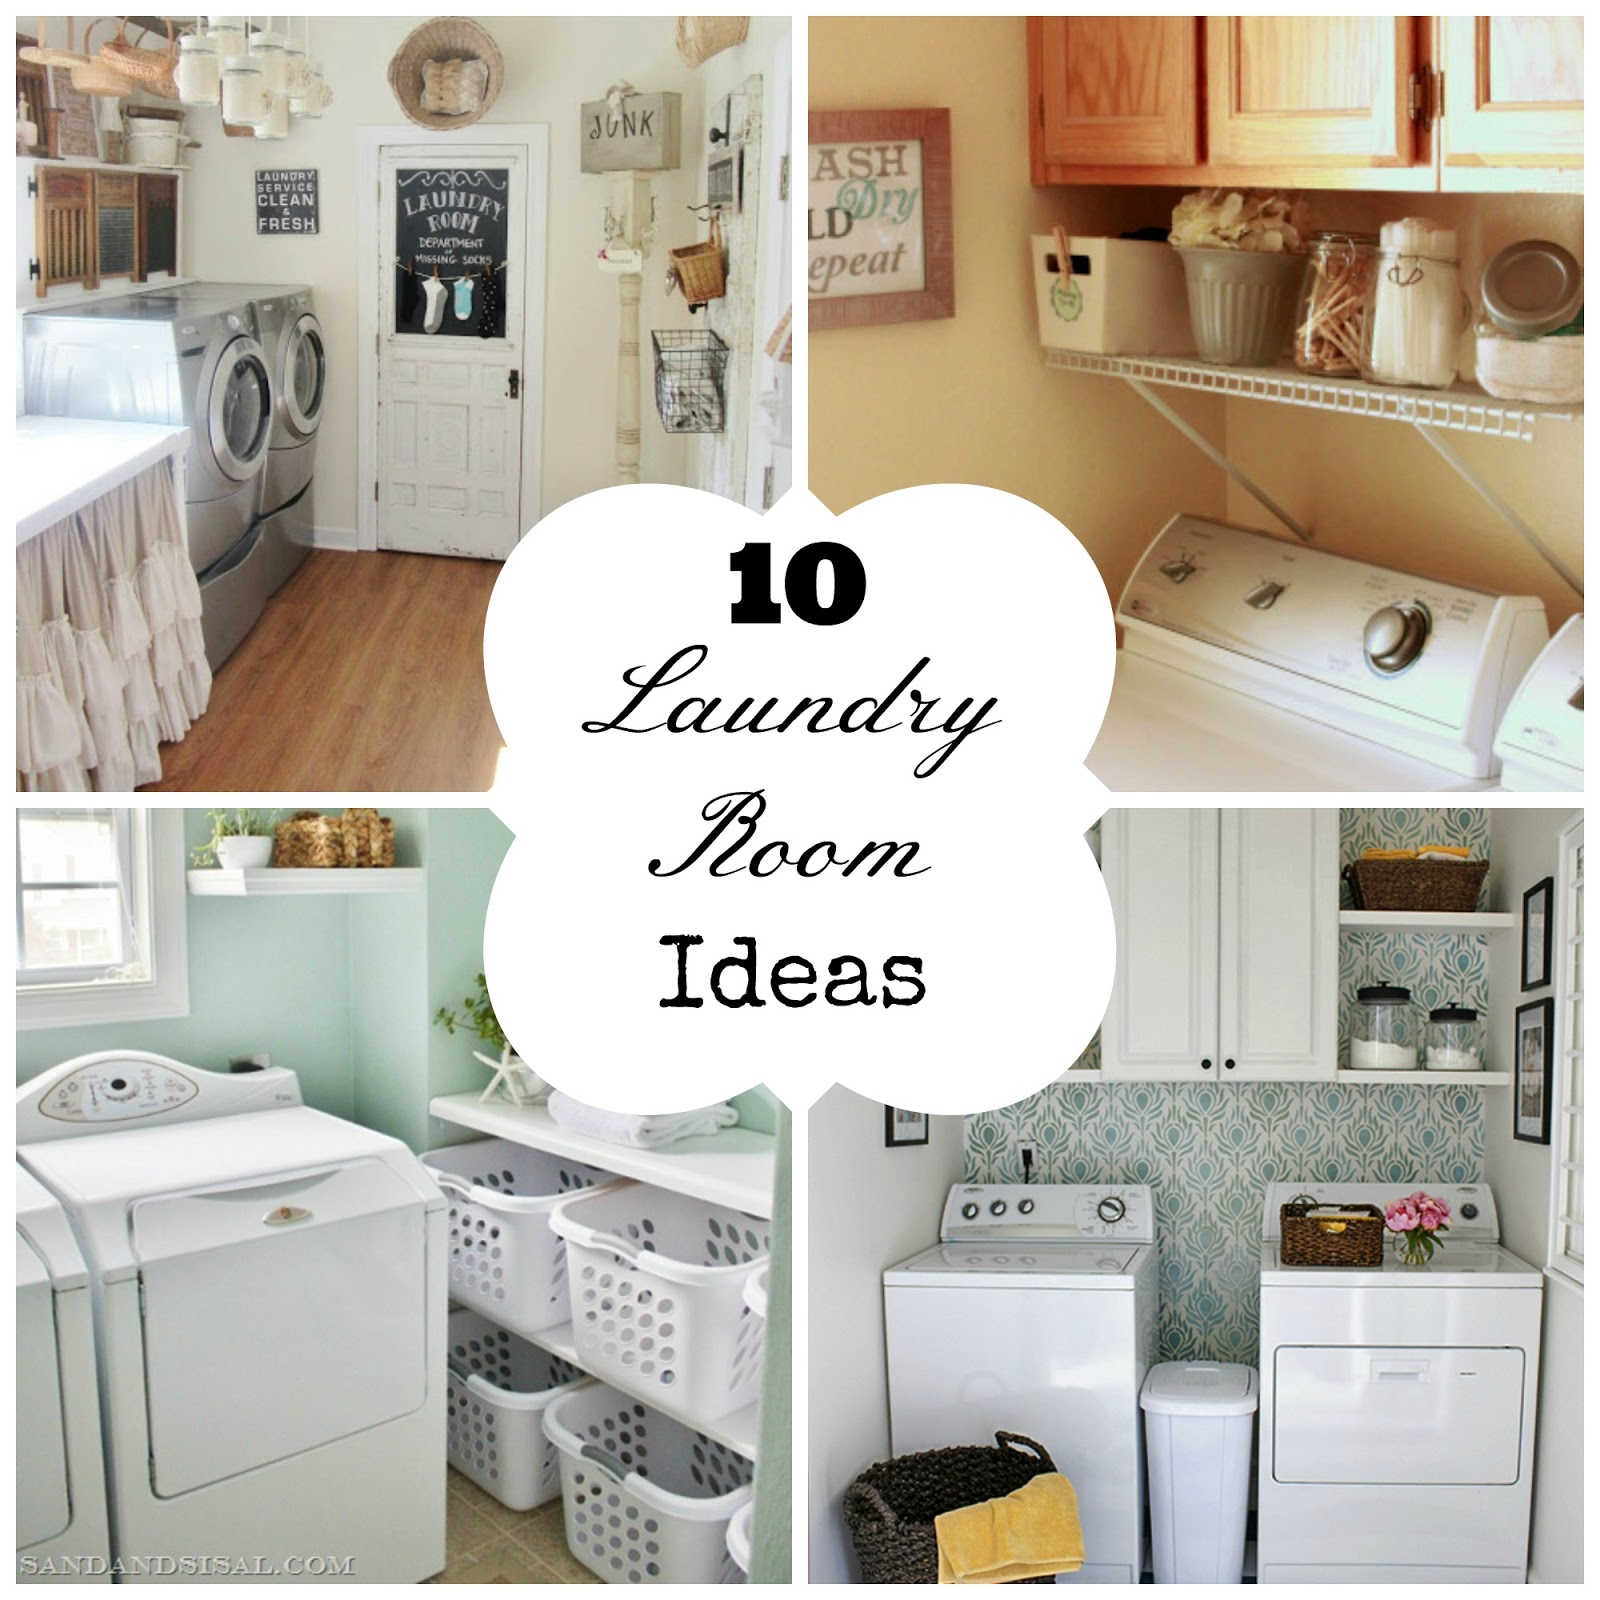 laundry room ideas modern diy art designs